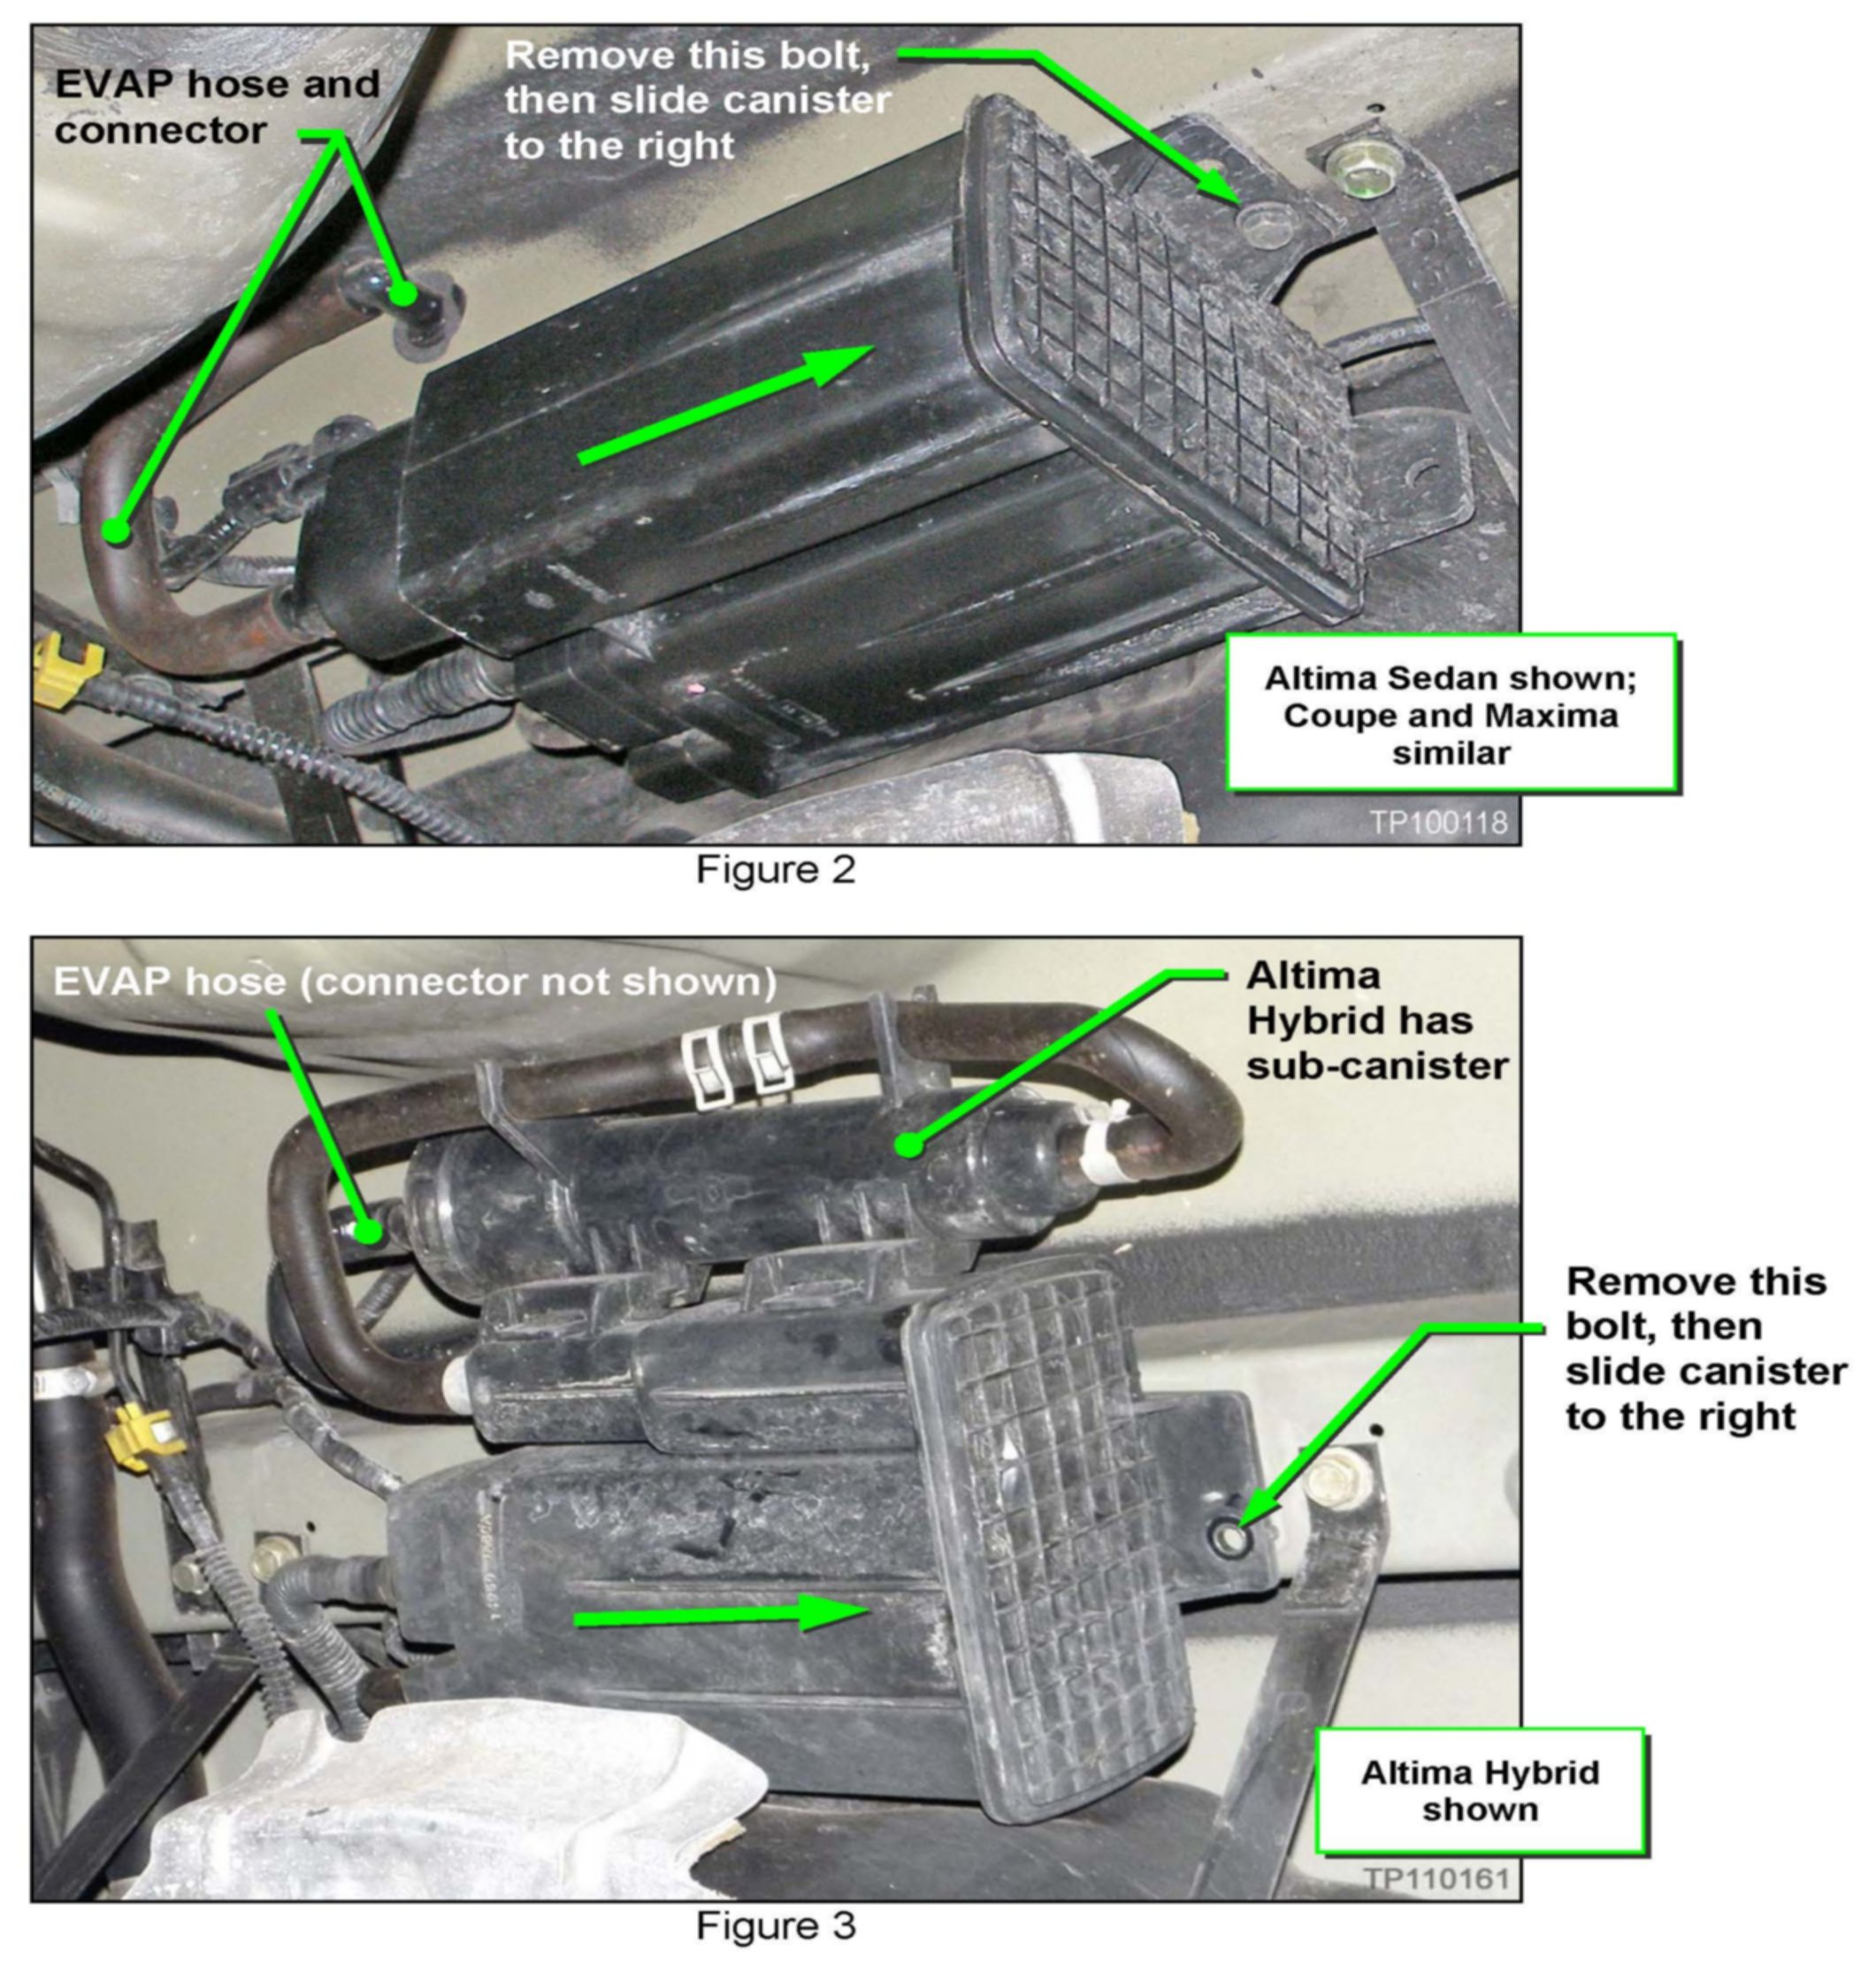 2012 Chevy Cruze Engine Diagram furthermore 1998 Oldsmobile Aurora Wiring Diagram as well Suzuki Aerio Ac Relay Location as well 2006 Saturn Ion Redline Engine also Ford Explorer 1993 Ford Explorer Check Engine. on saturn vue pcv valve engine location